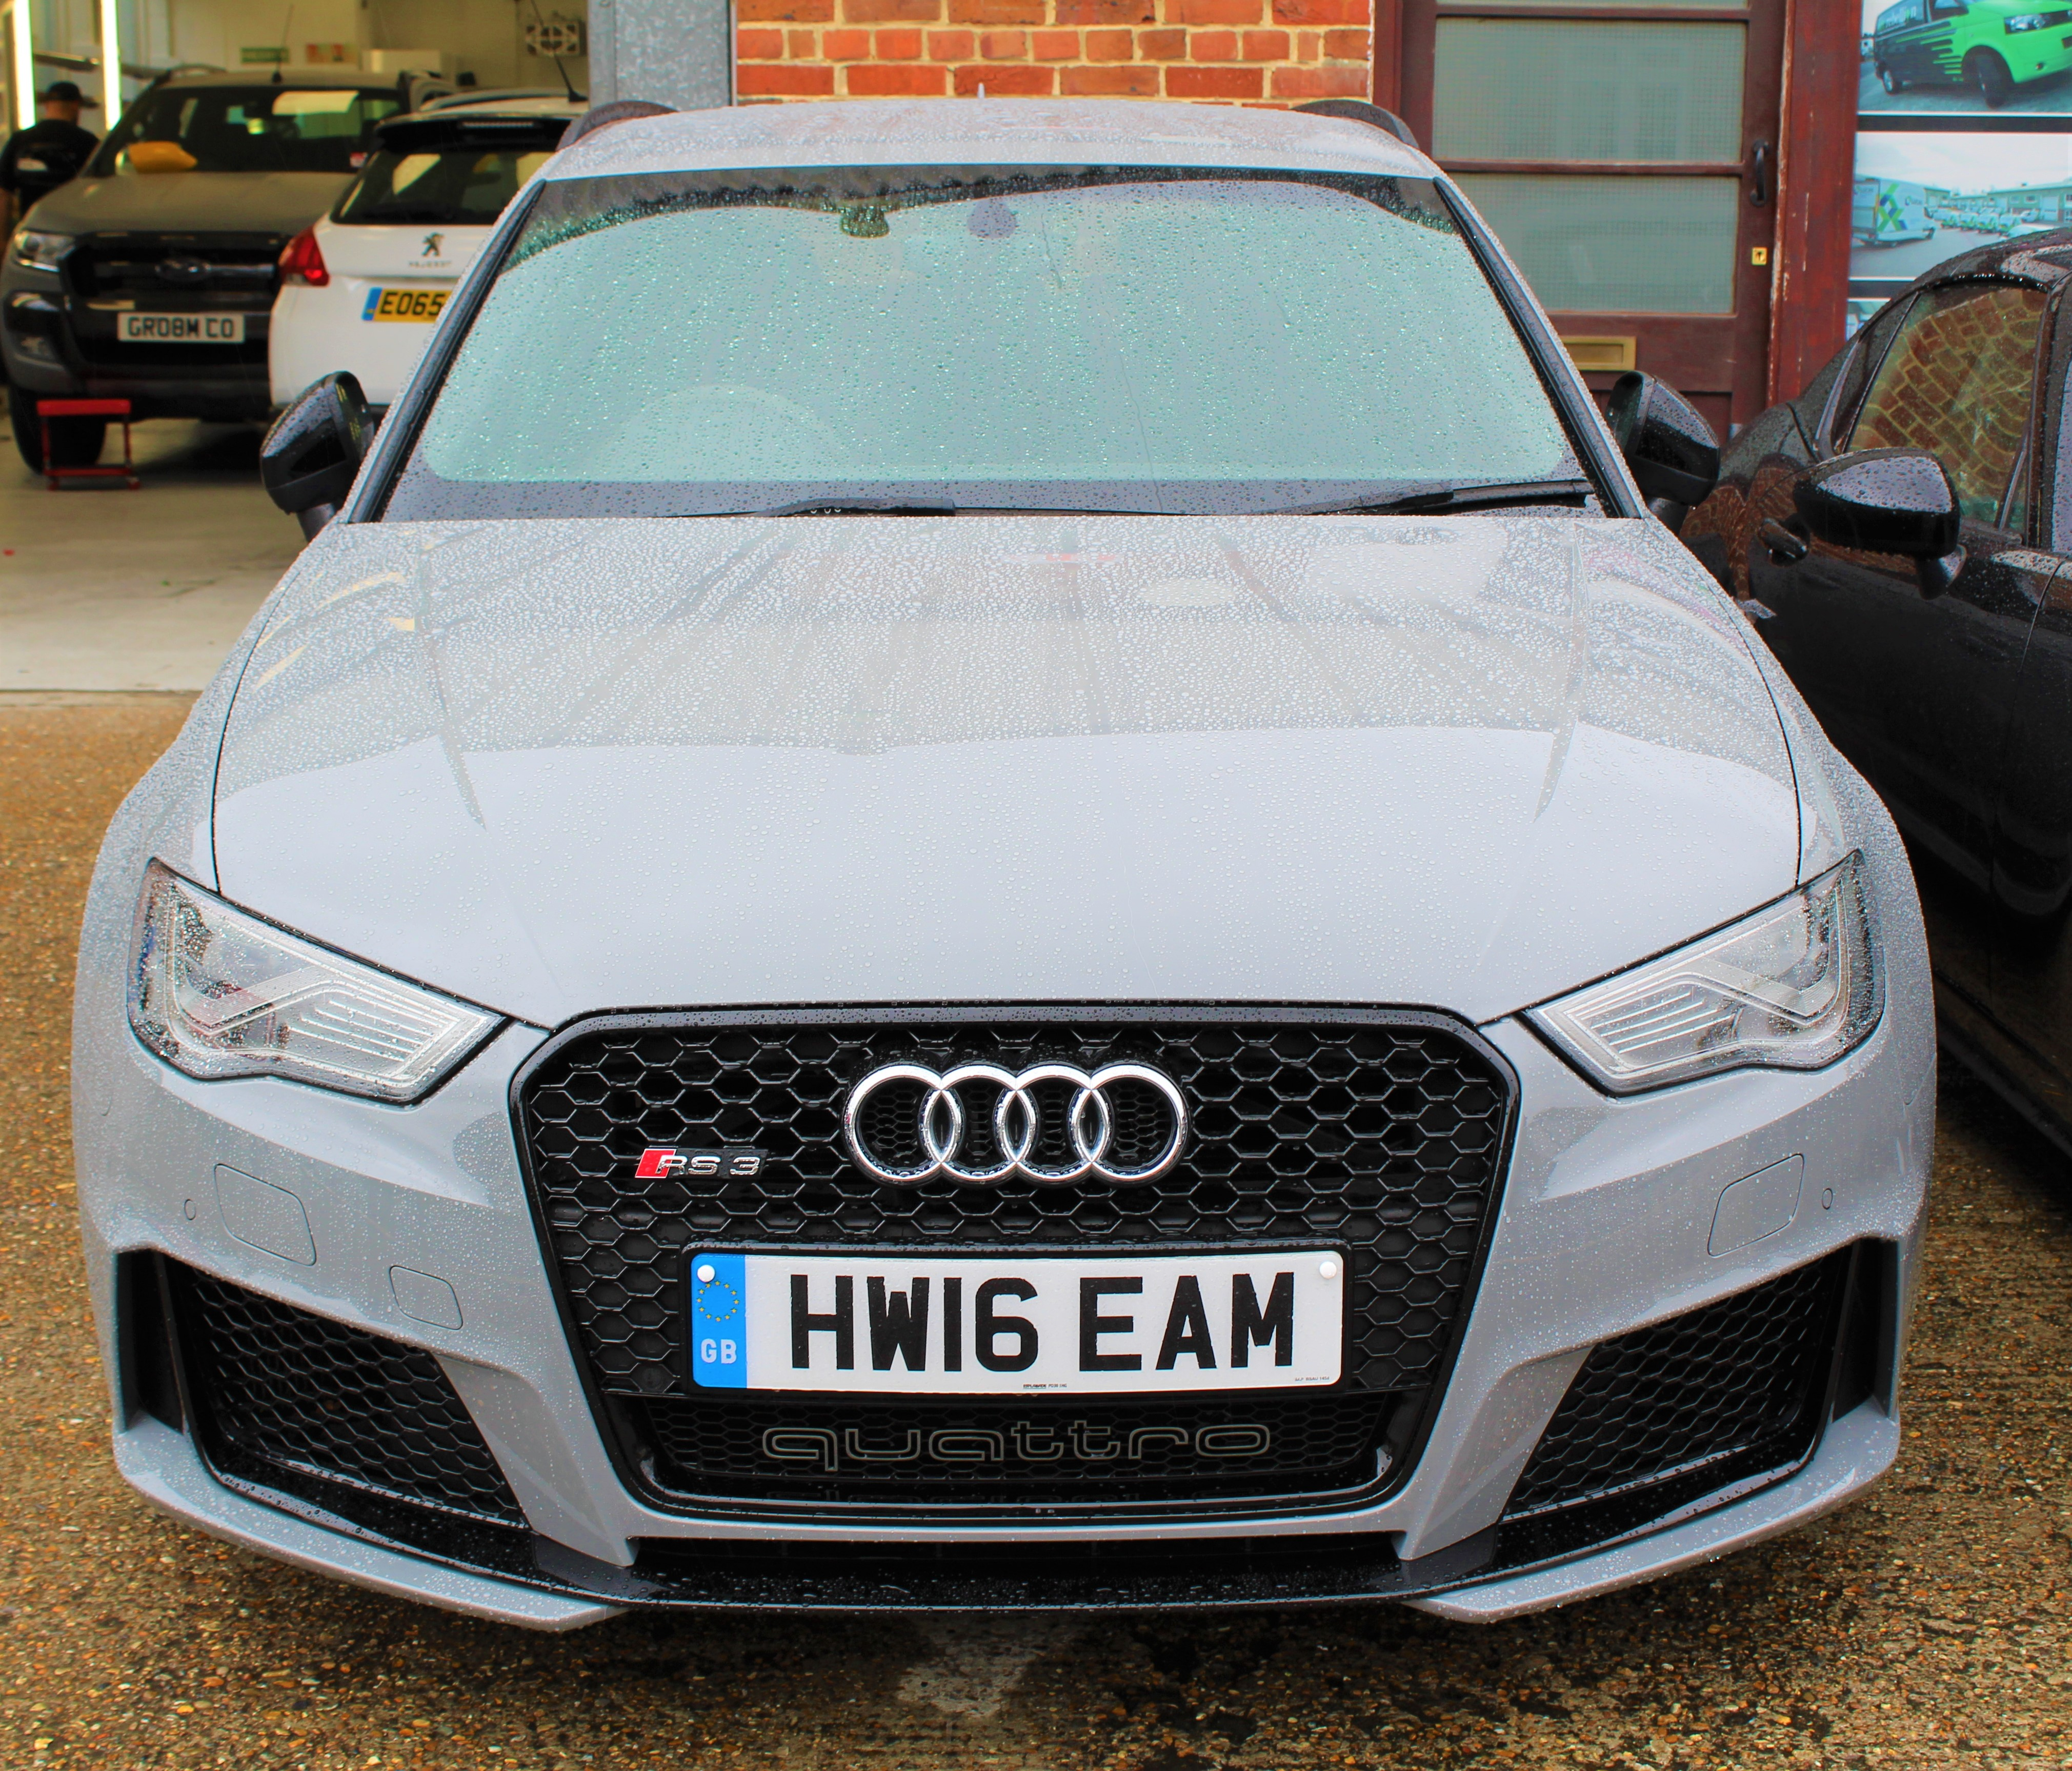 Audi Rs3 Wrapped In Paint Film Protection By Cfx London